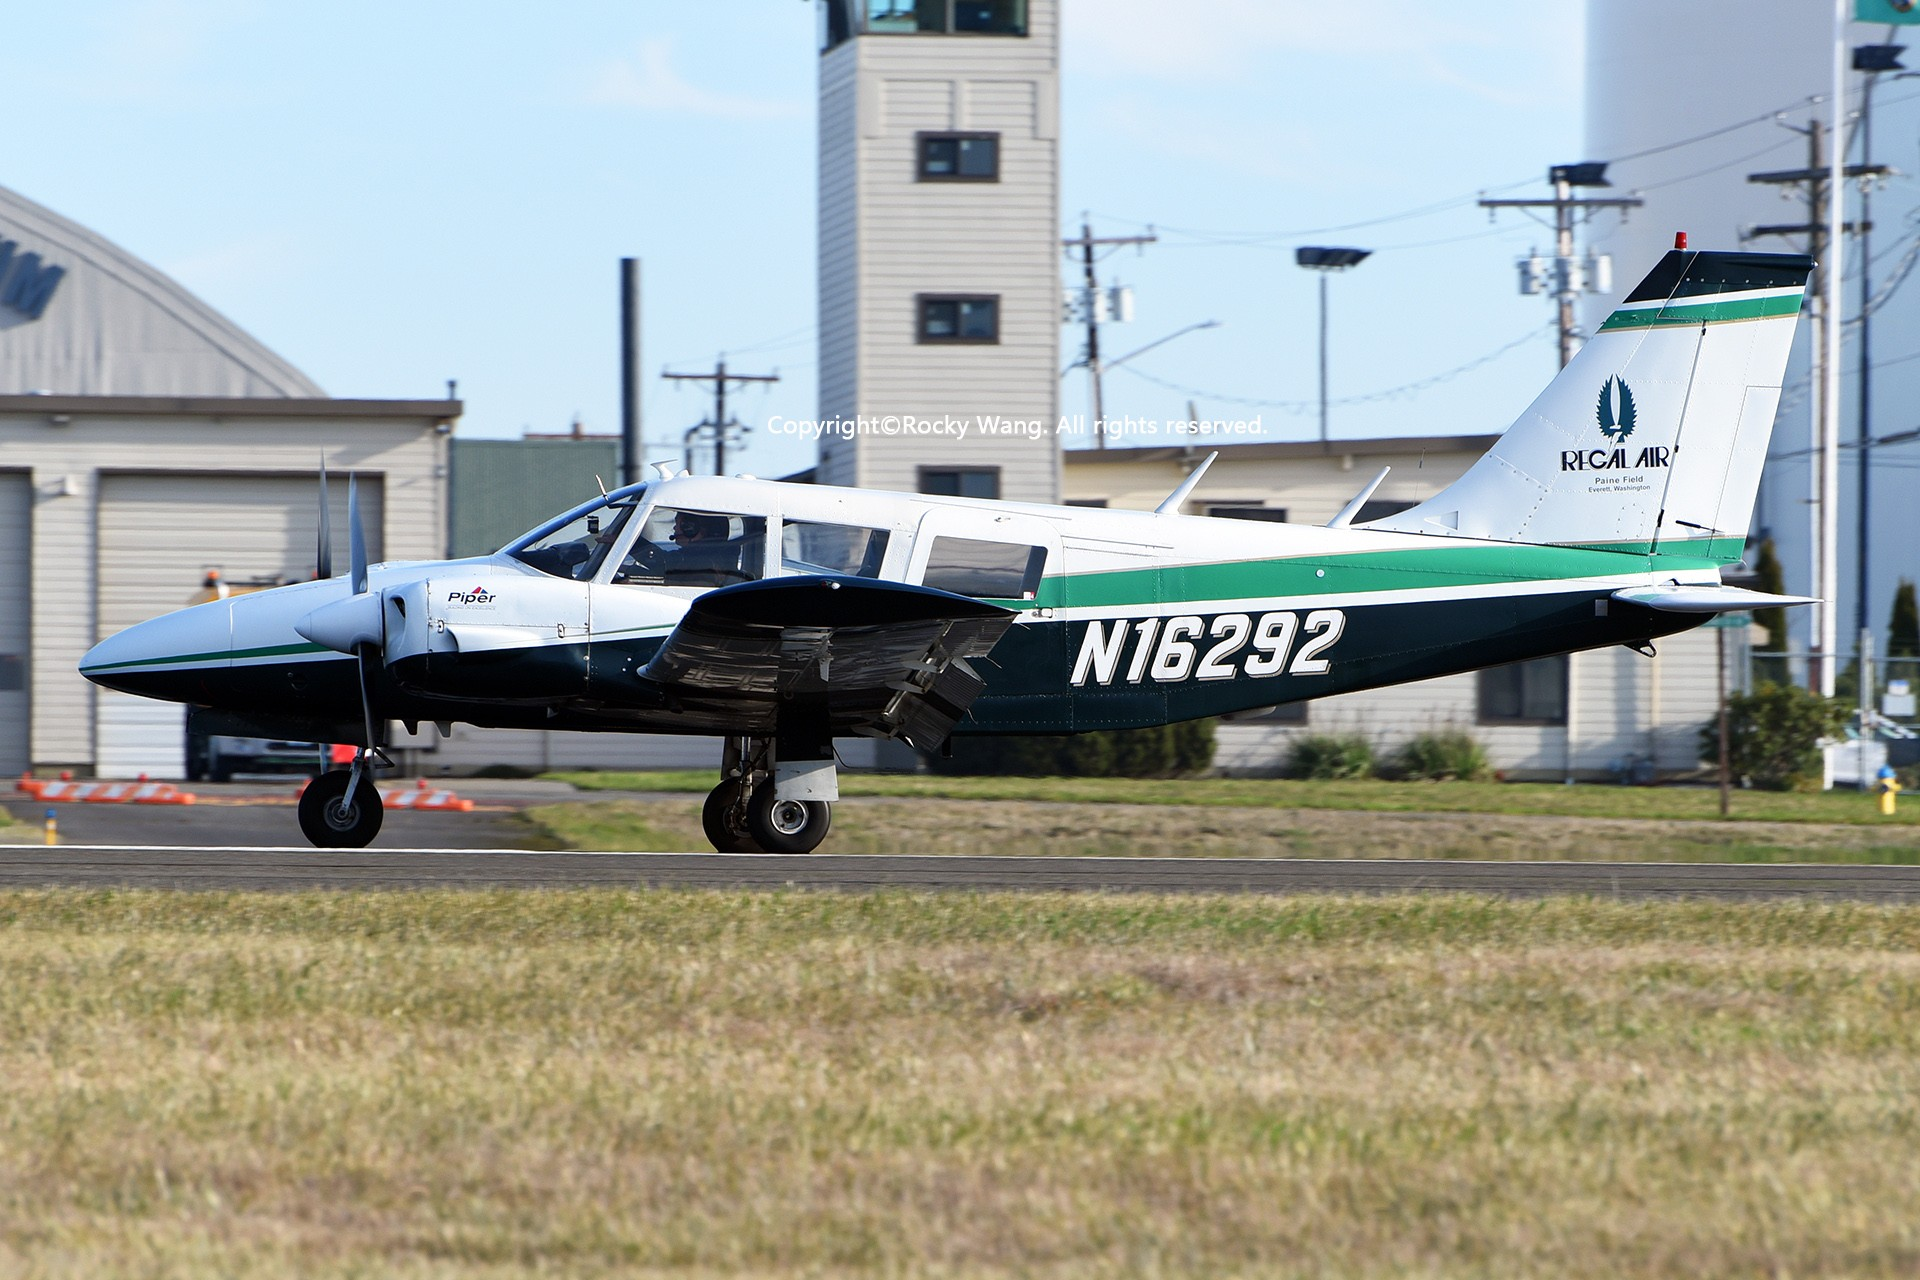 Re:[原创]Seattle 30图 PIPER PA-34-200 SENECA N16292 Snohomish County Airport/Paine Field